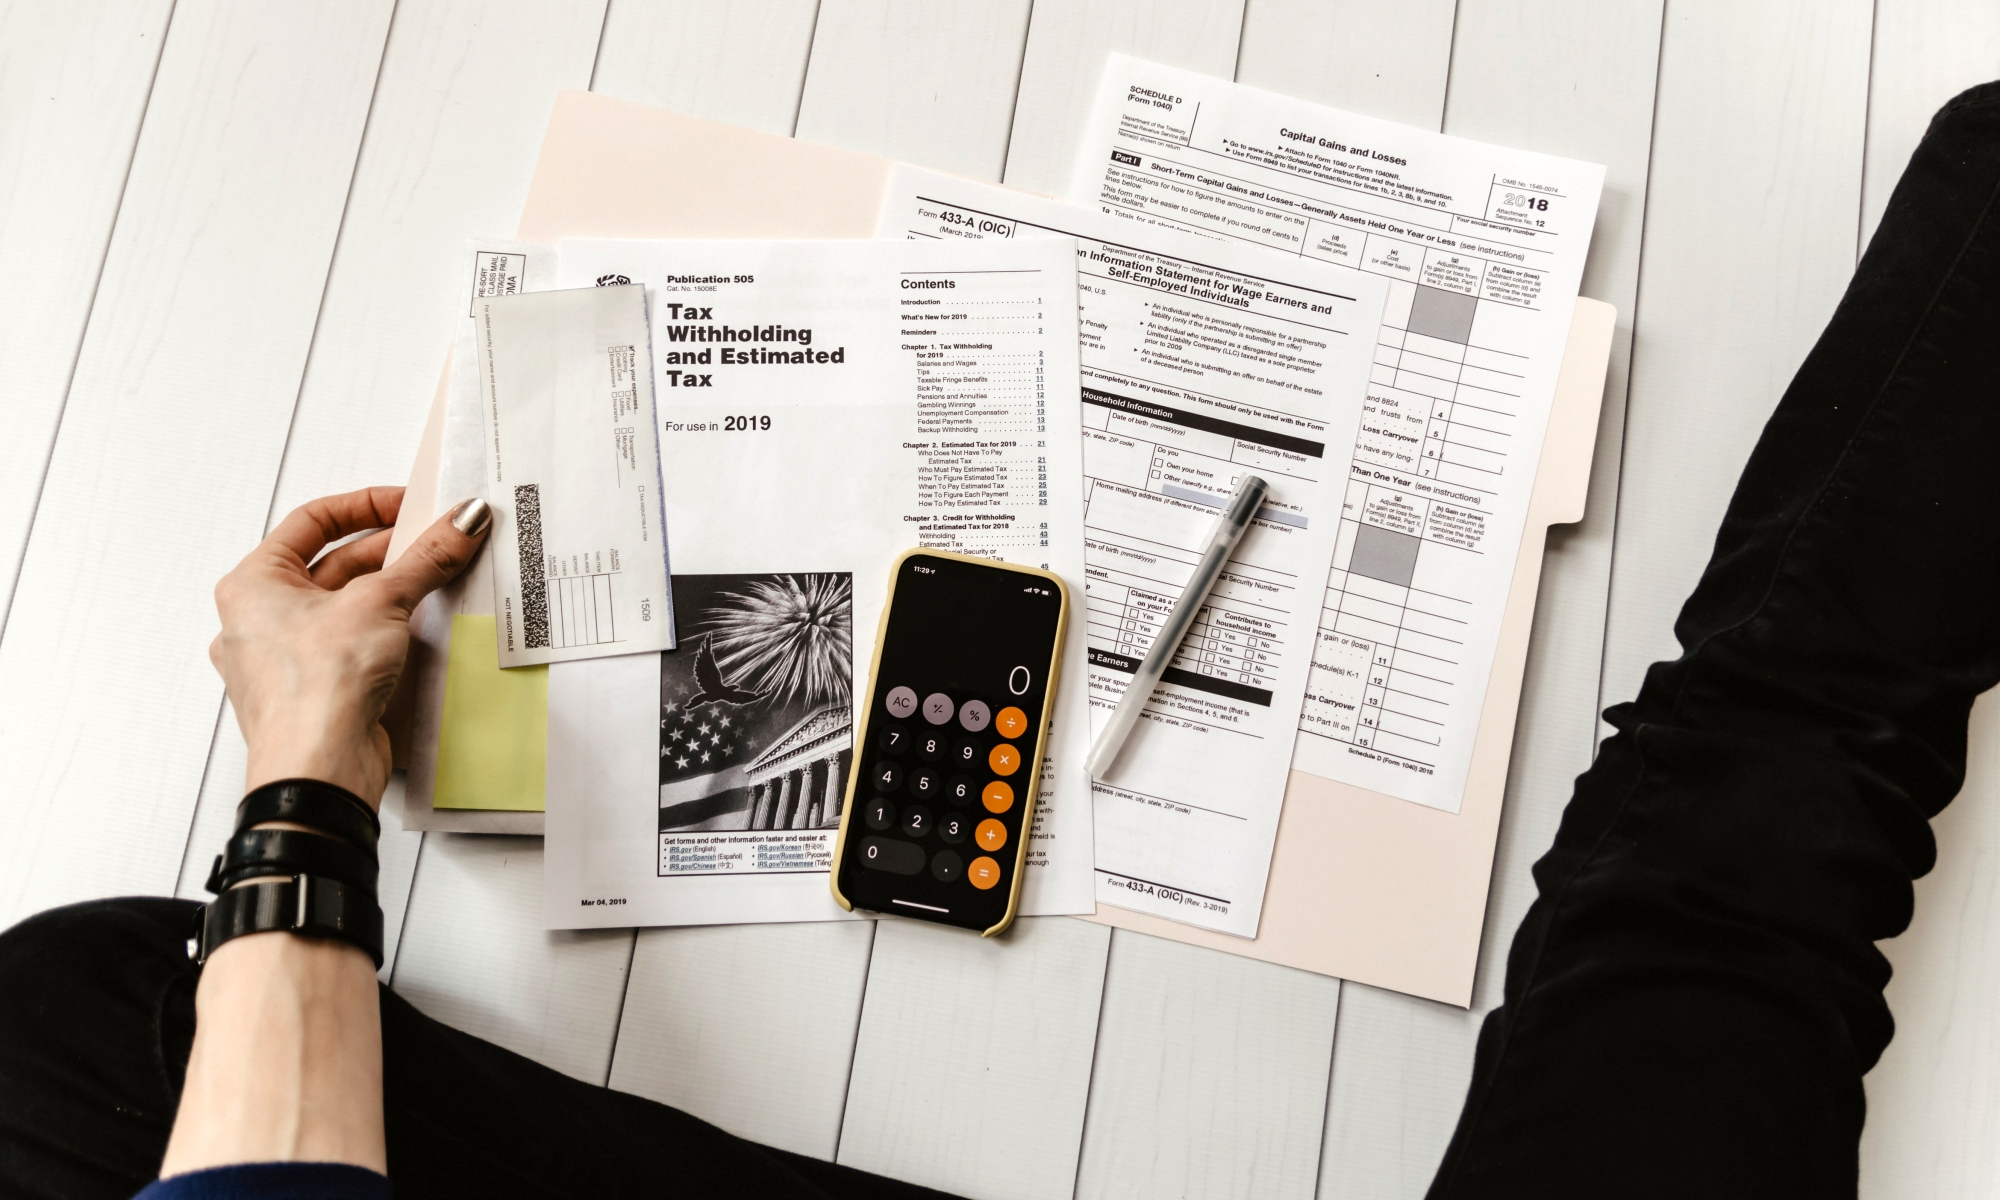 Person with tax forms and phone calculator